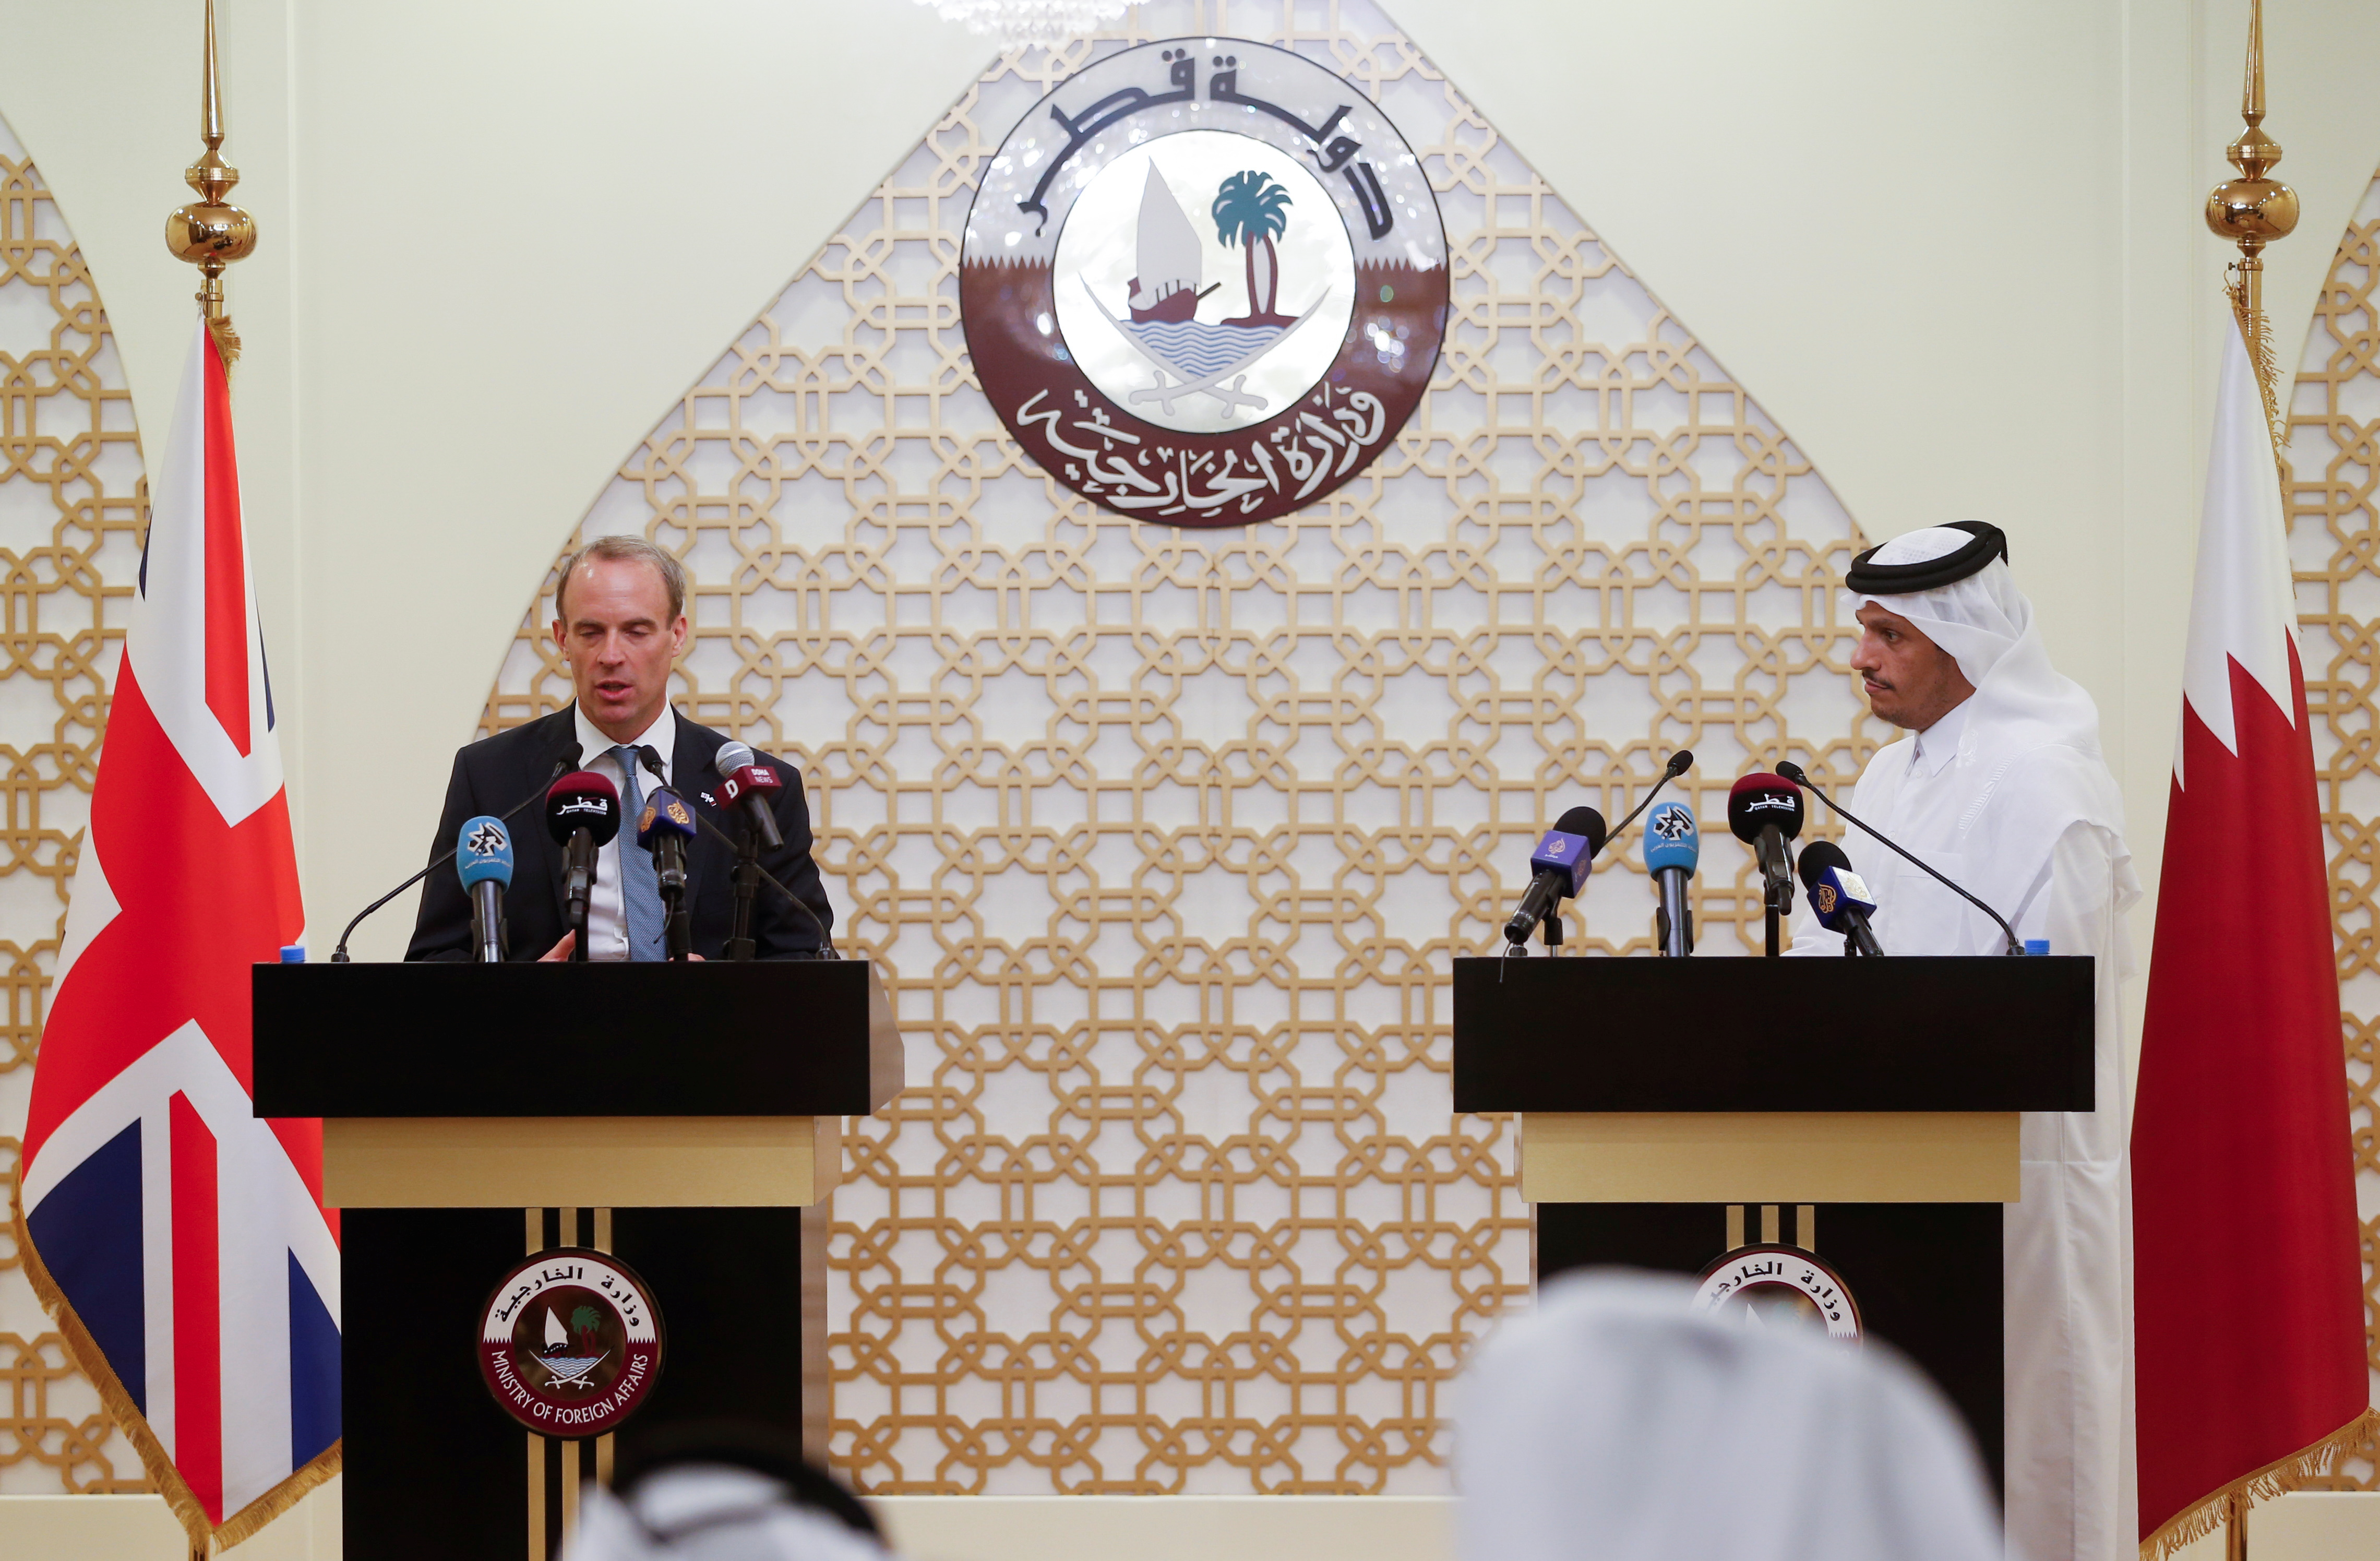 Qatari Foreign Minister Sheikh Mohammed bin Abdulrahman Al-Thani and Britain's Foreign Secretary Dominic Raab hold a joint news conference in Doha, Qatar, September 2, 2021. REUTERS/Hamad l Mohammed